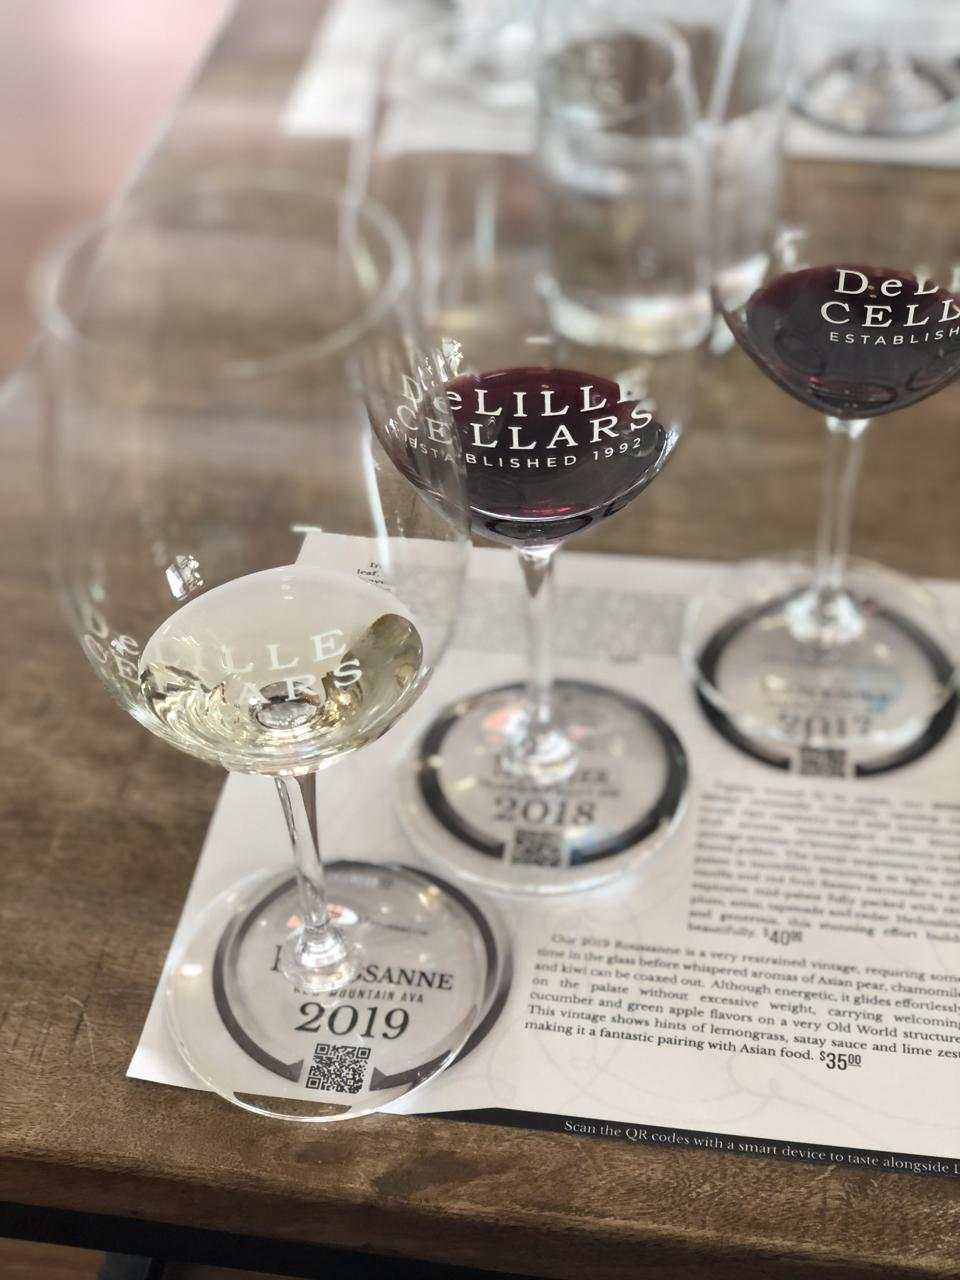 DeLILLE Cellars in Washington state specializes in Bordeaux and Rhone blends.